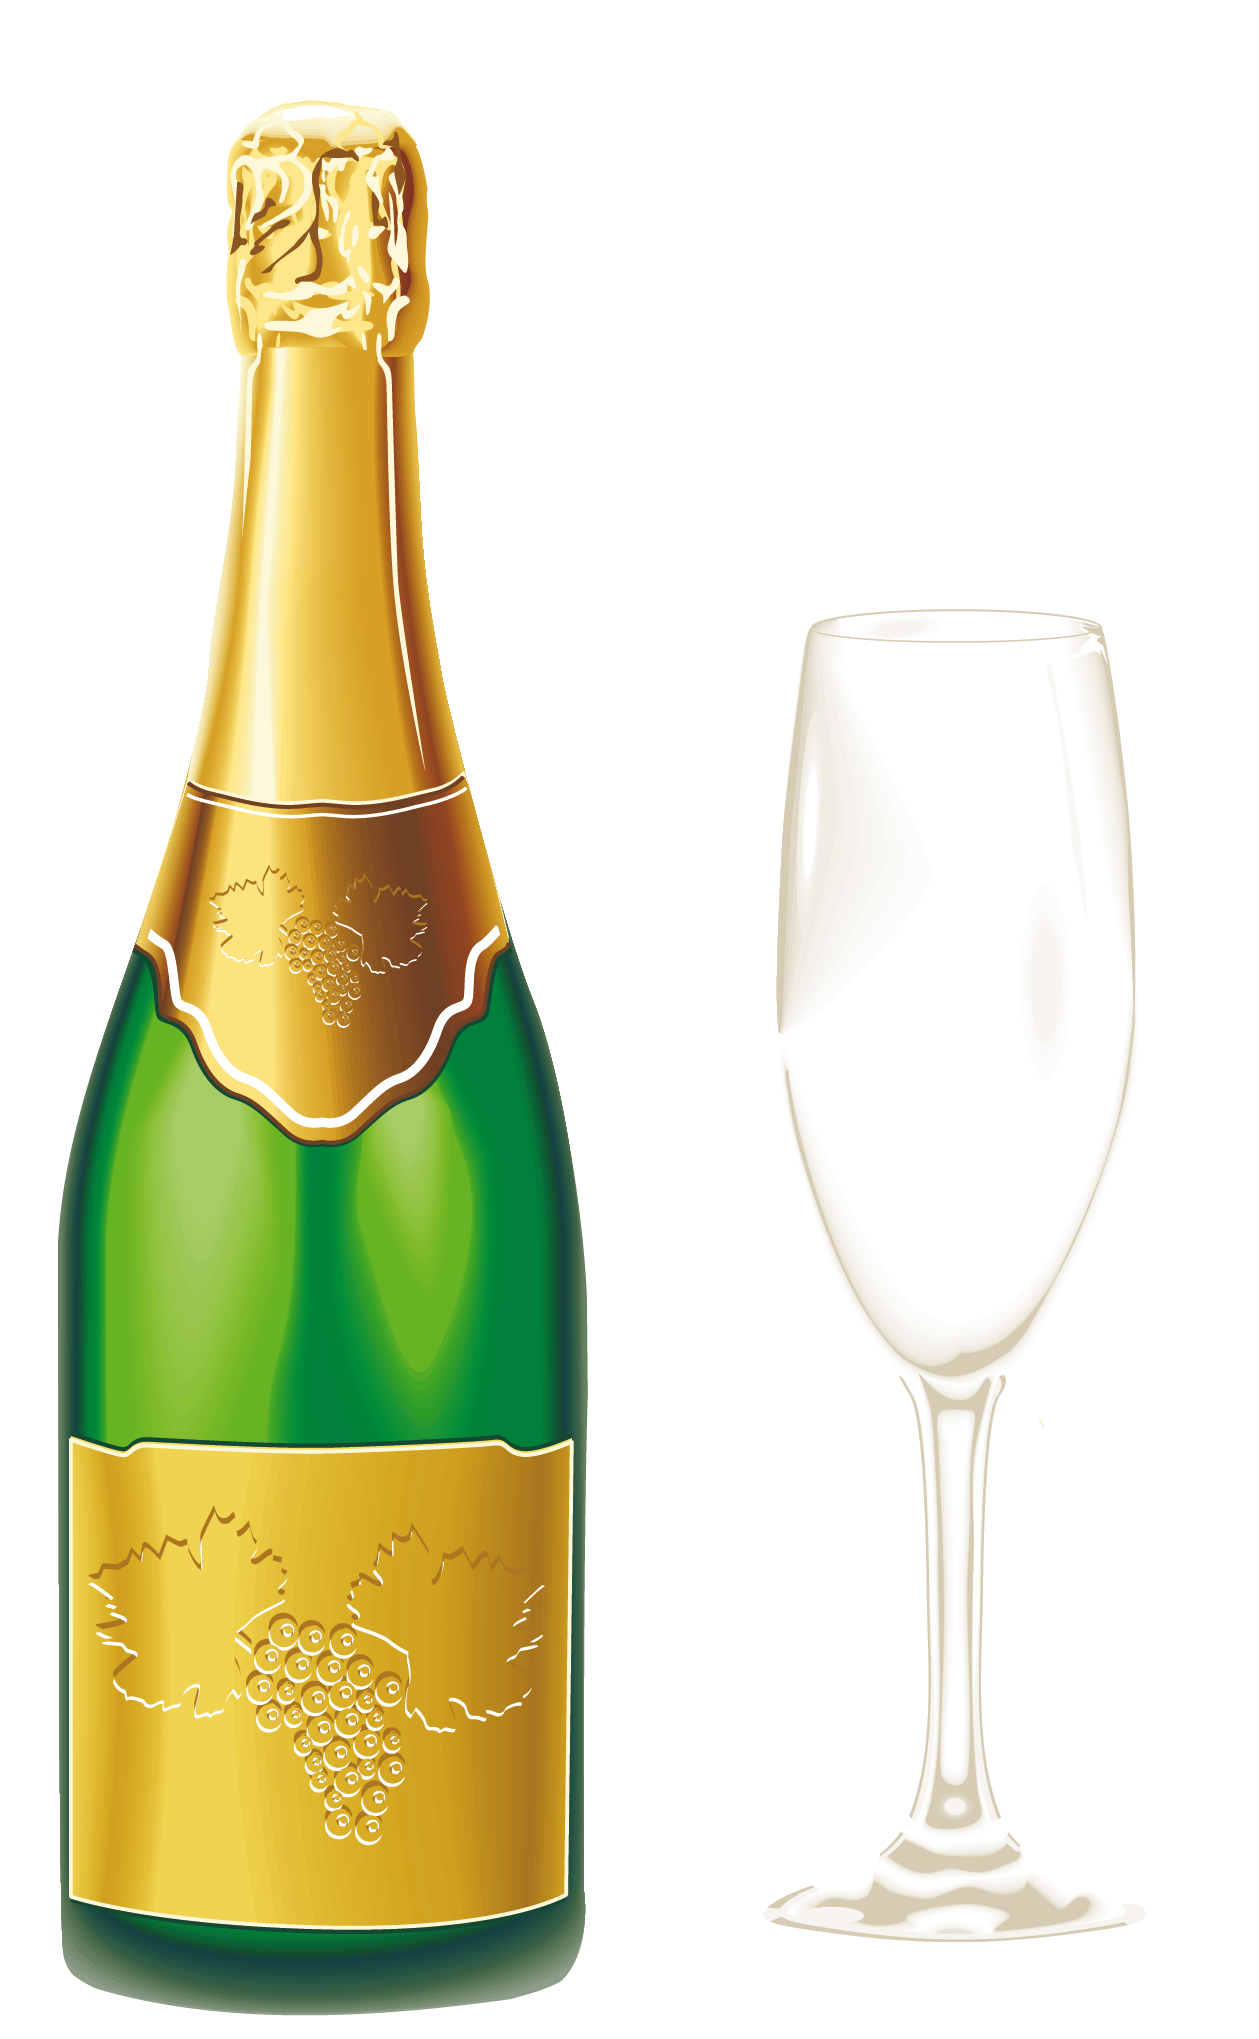 Champaign clipart champaigne. Champagne with glass png